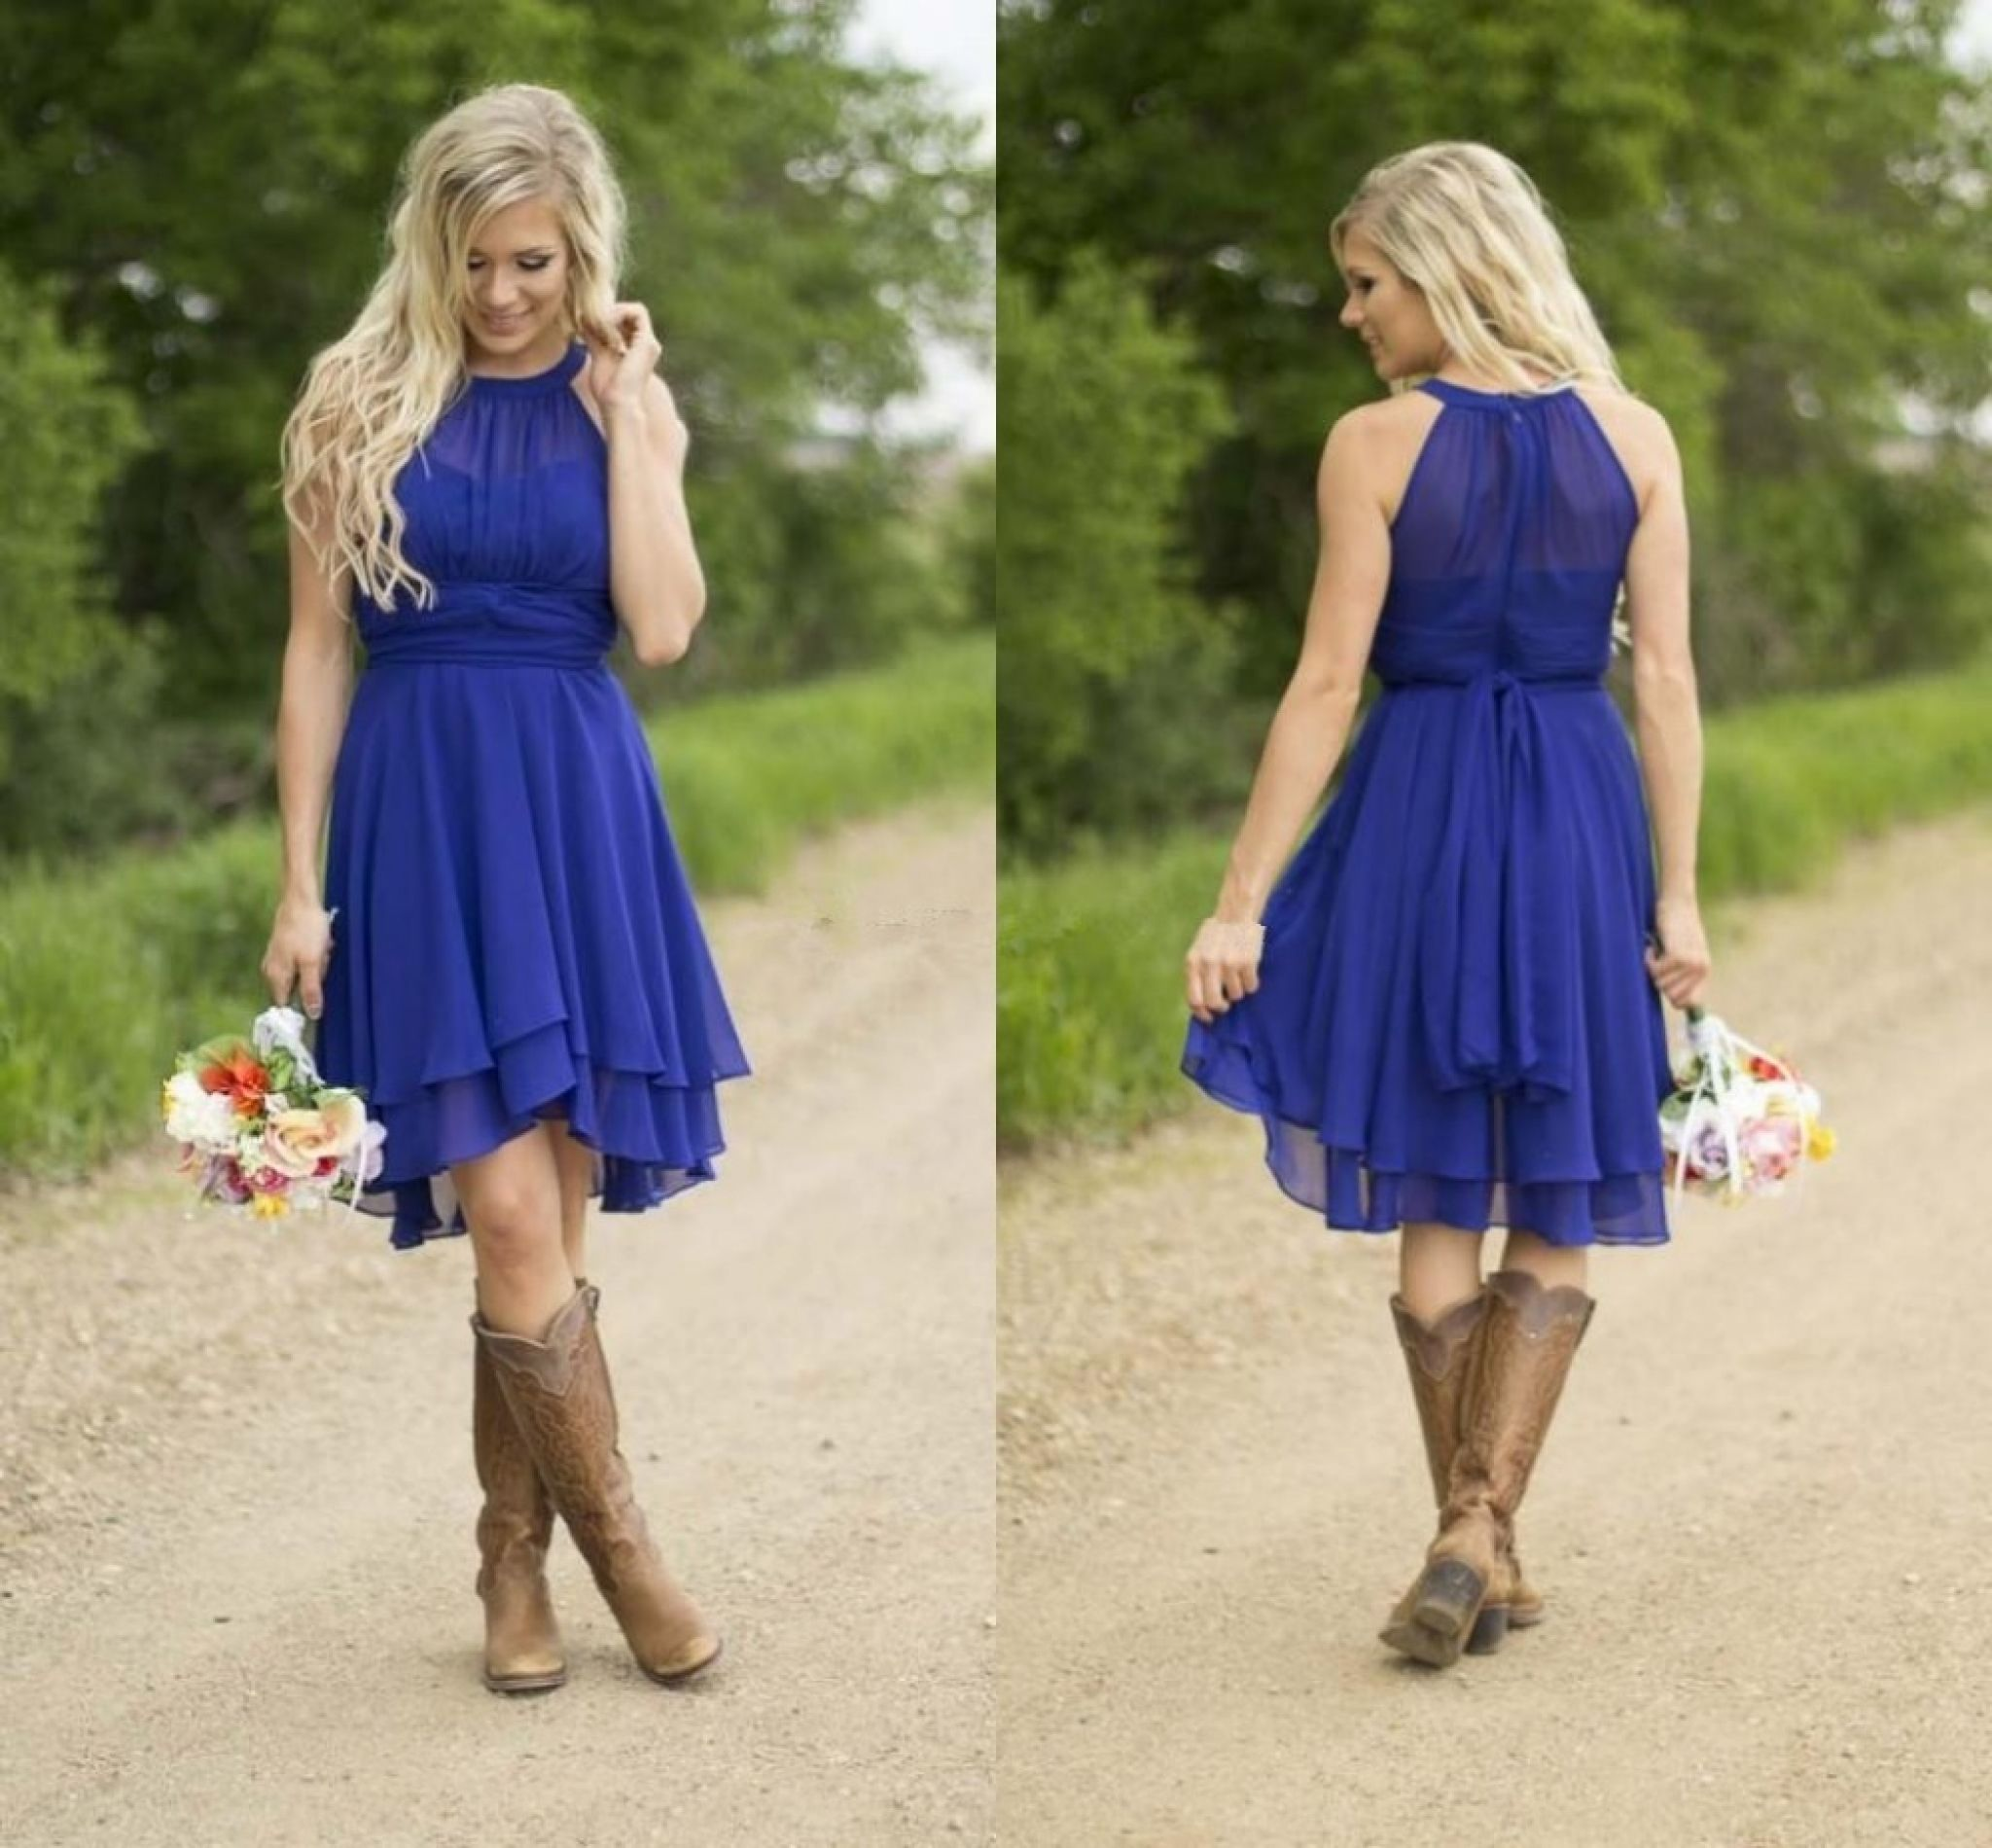 short western style wedding dresses - how to dress for a wedding ...